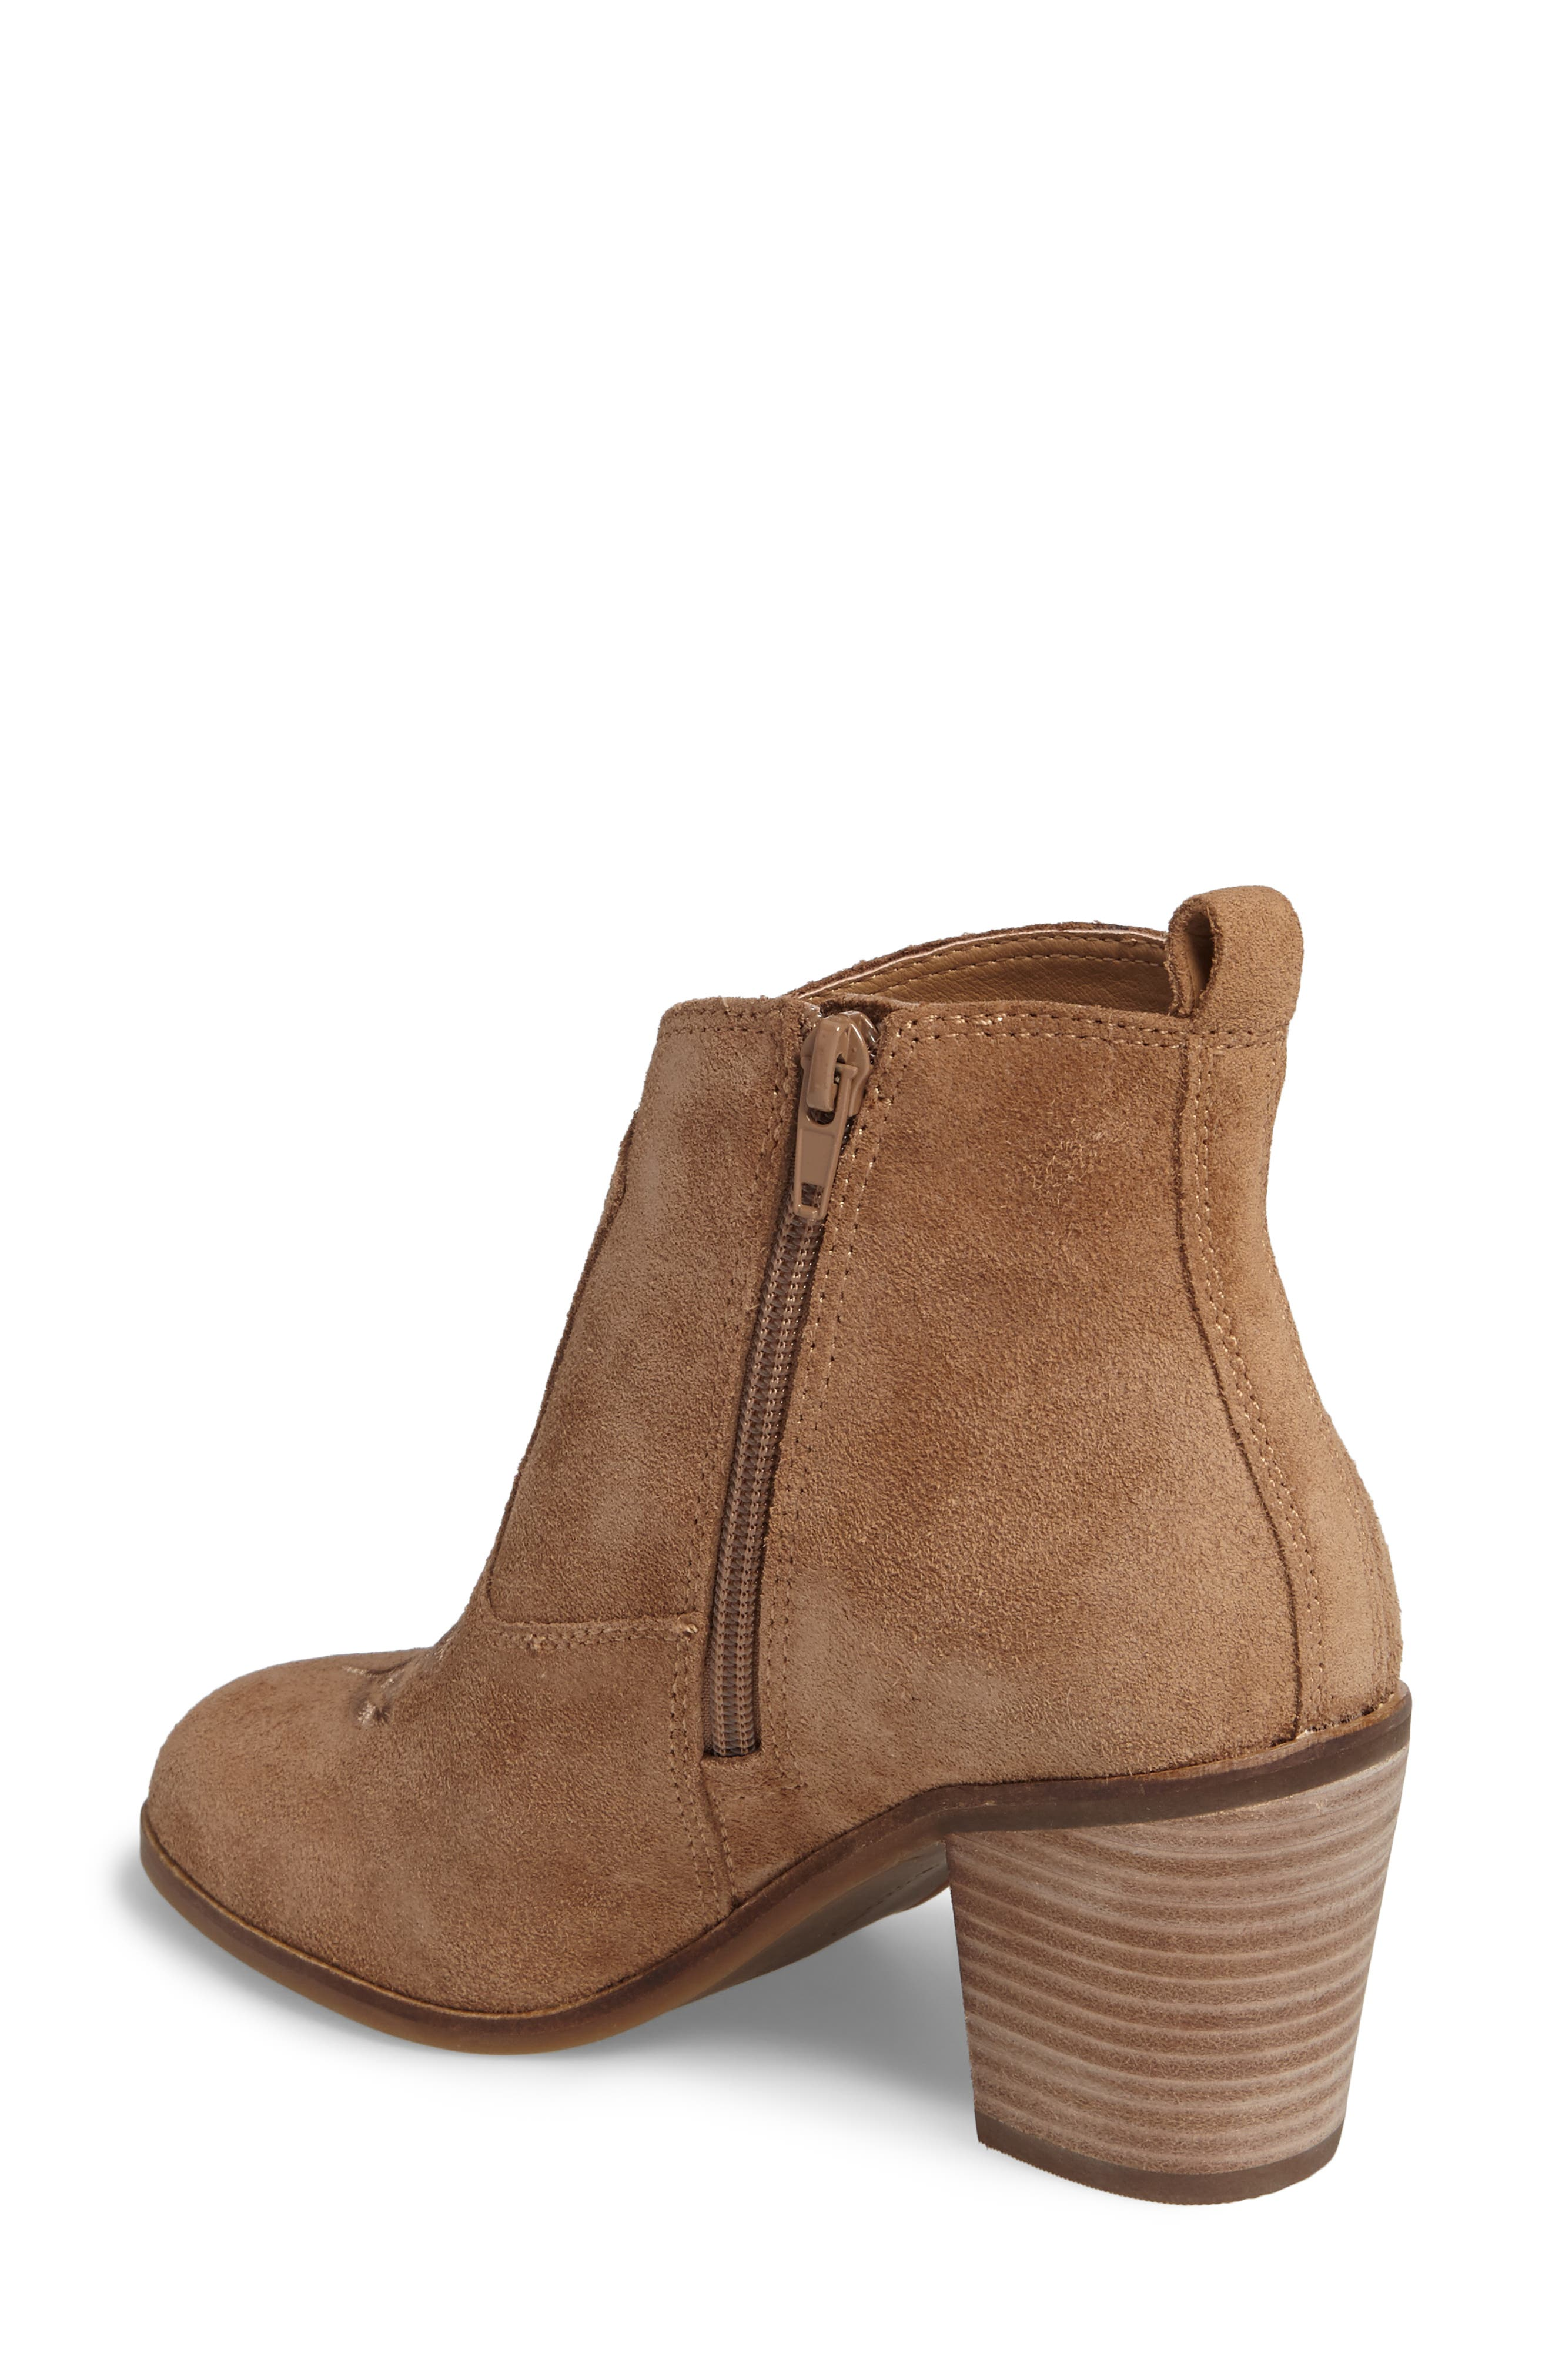 Pexton Embroidered Bootie,                             Alternate thumbnail 7, color,